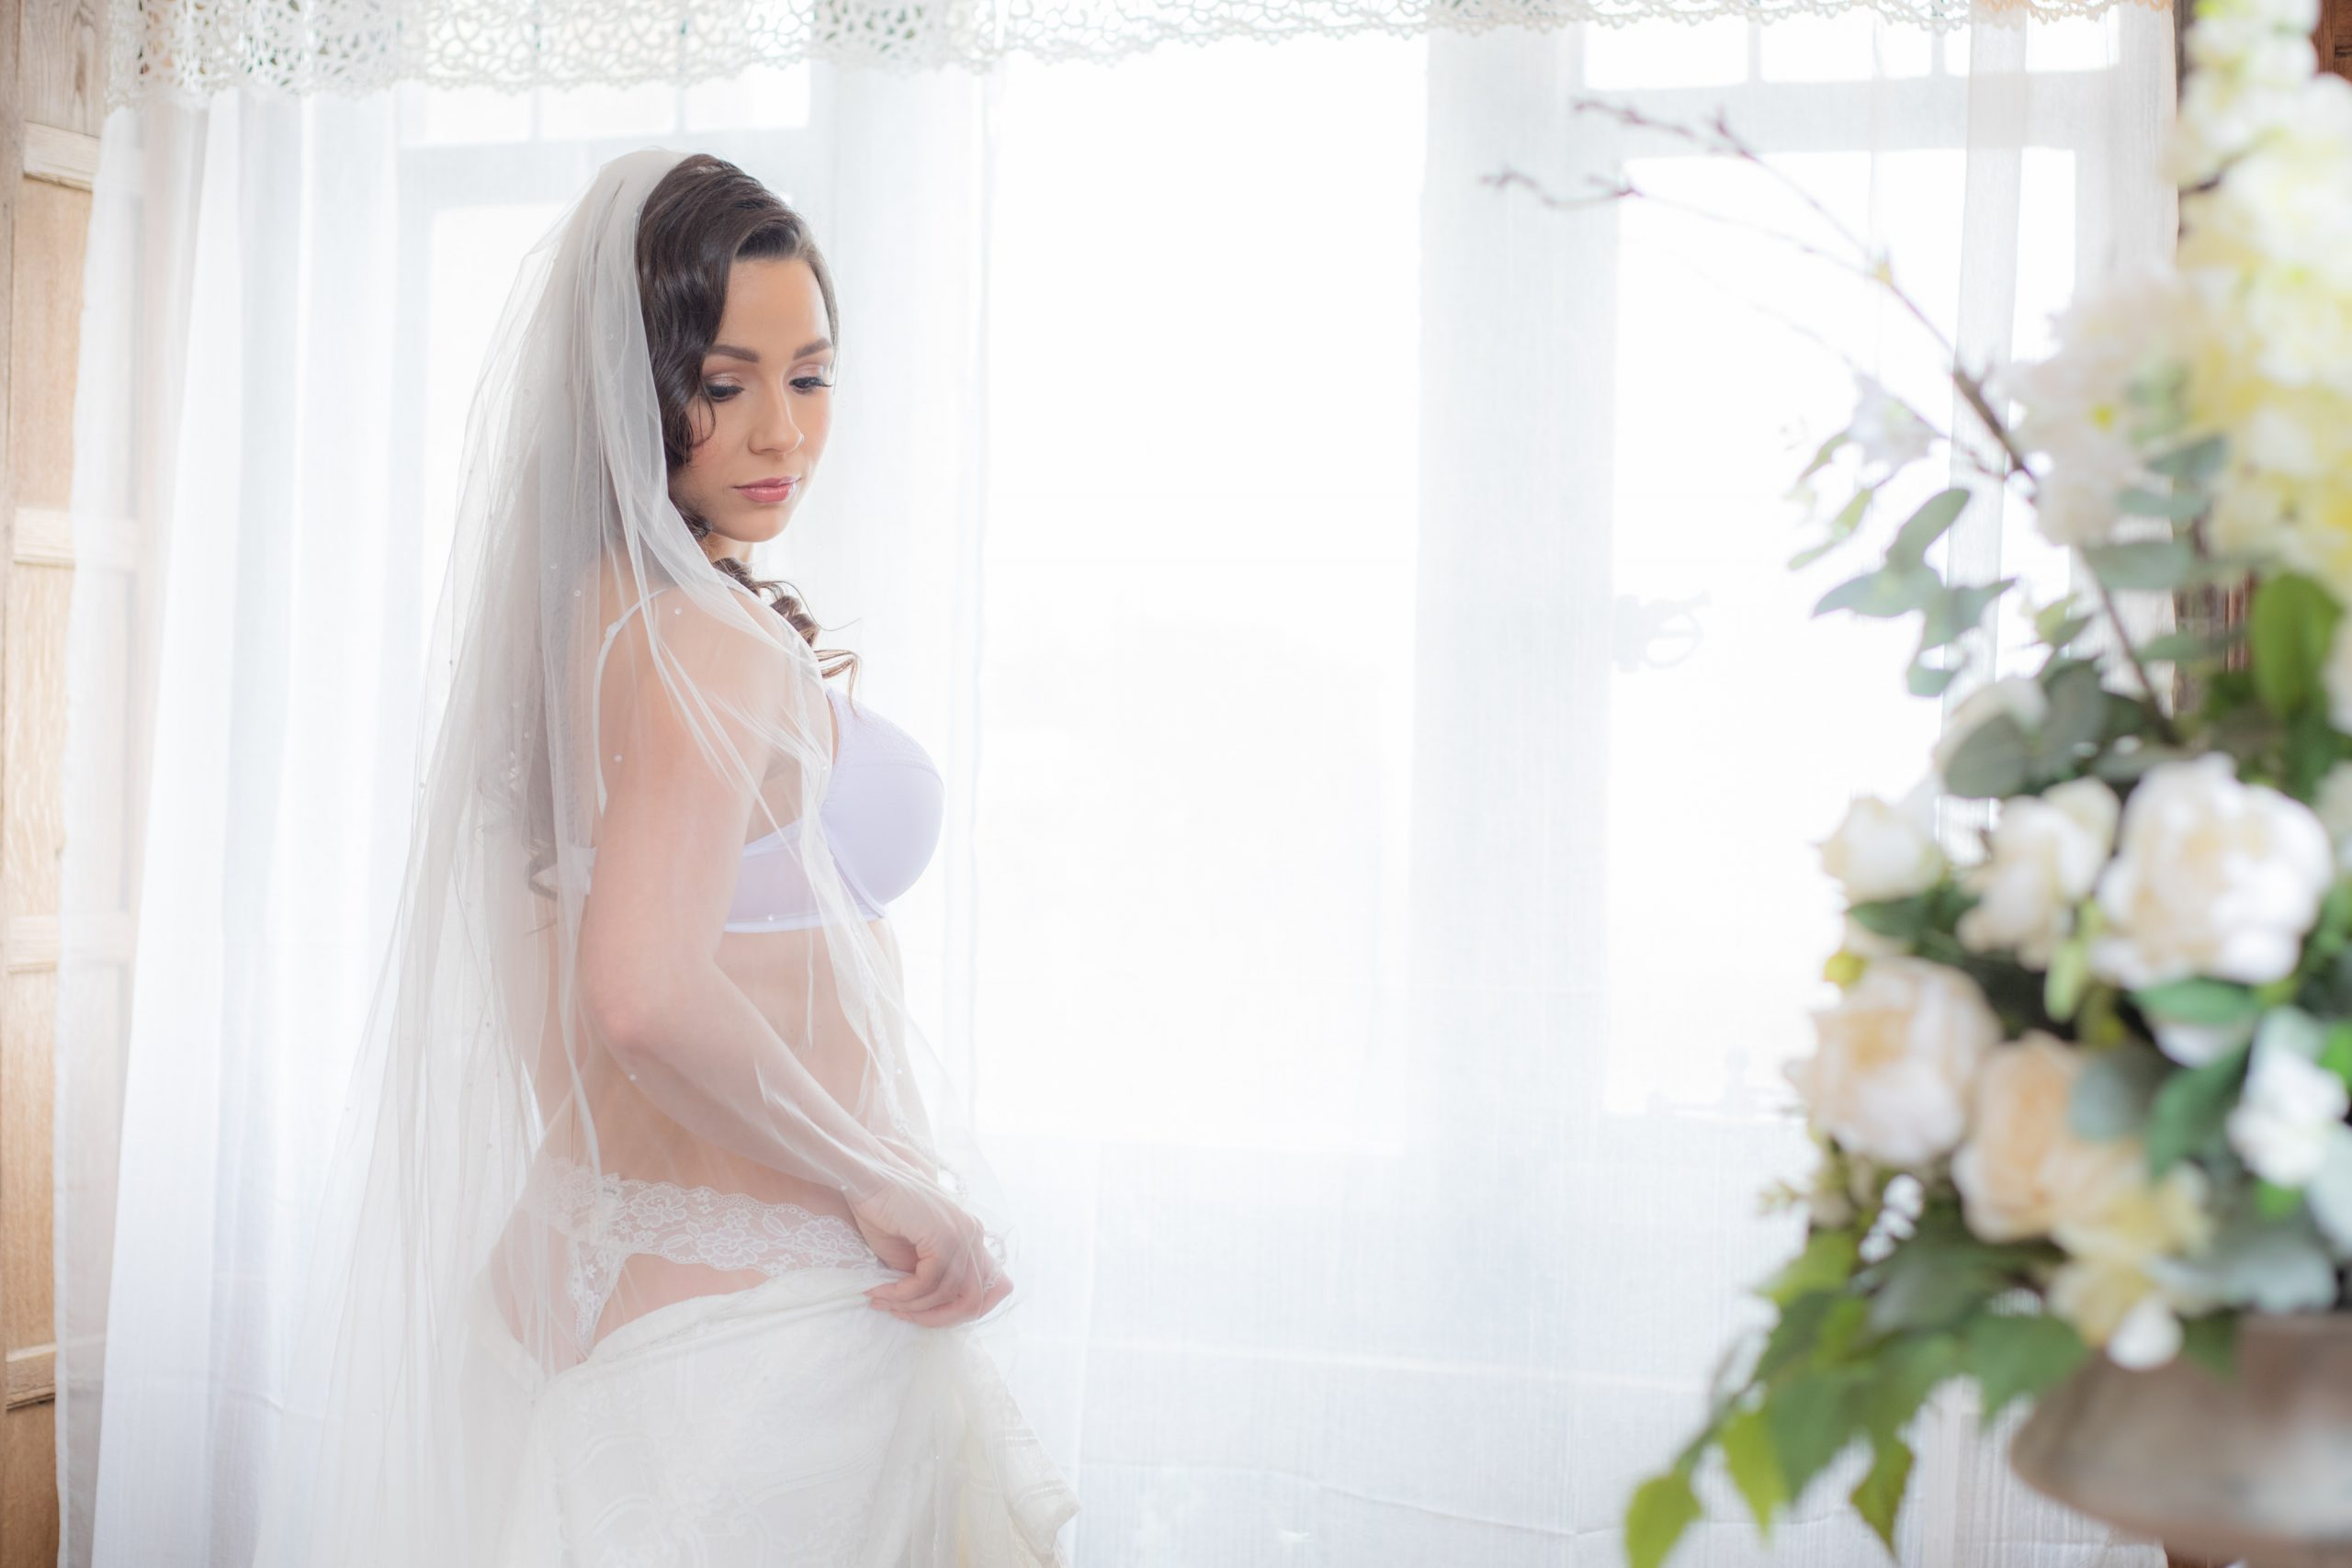 Why you should have a bridal boudoir photoshoot